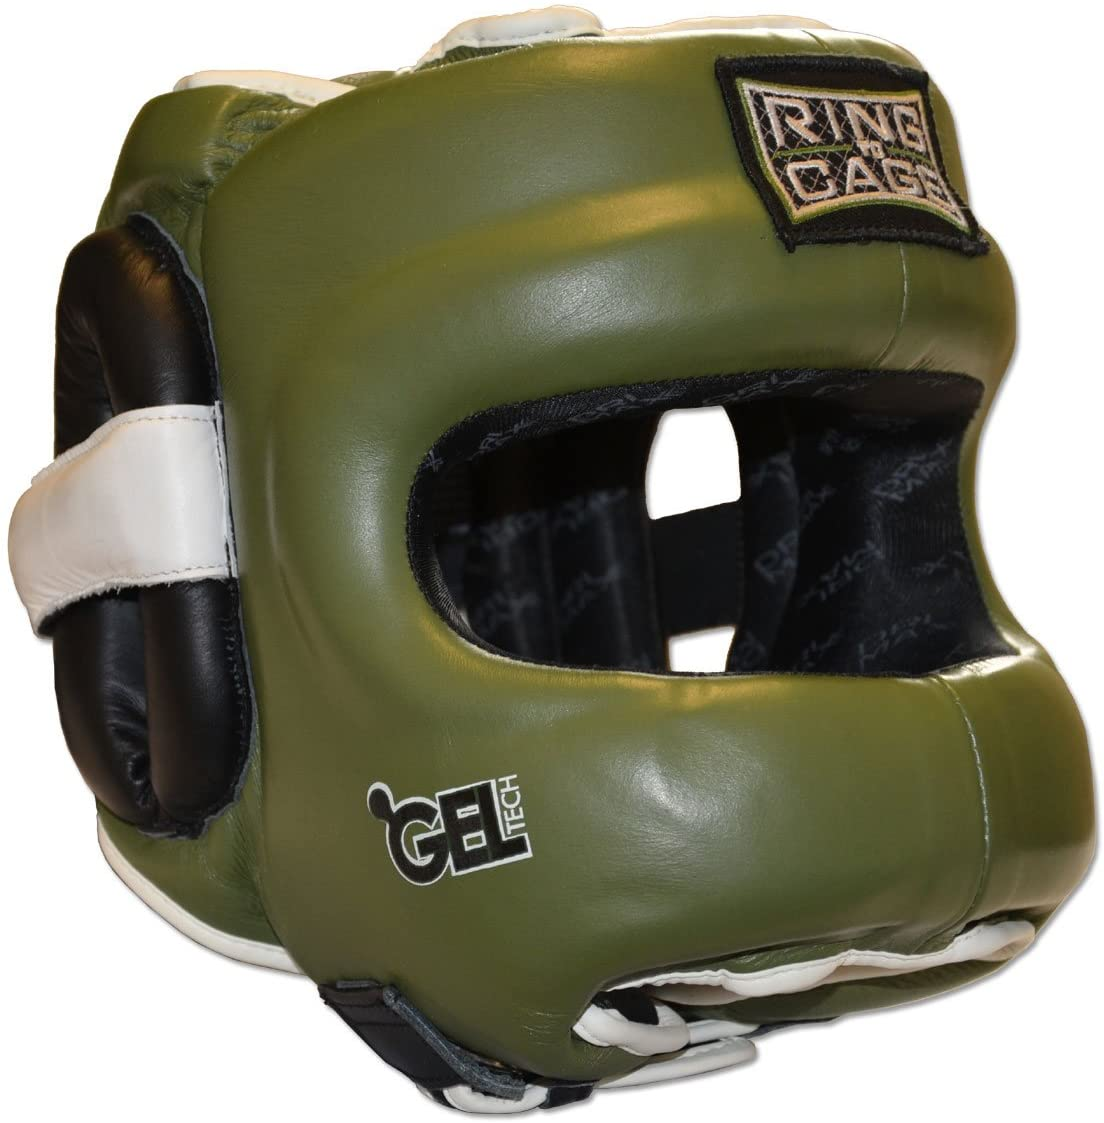 Ring to Cage Deluxe Full Face GelTech Sparring Headgear 2.0